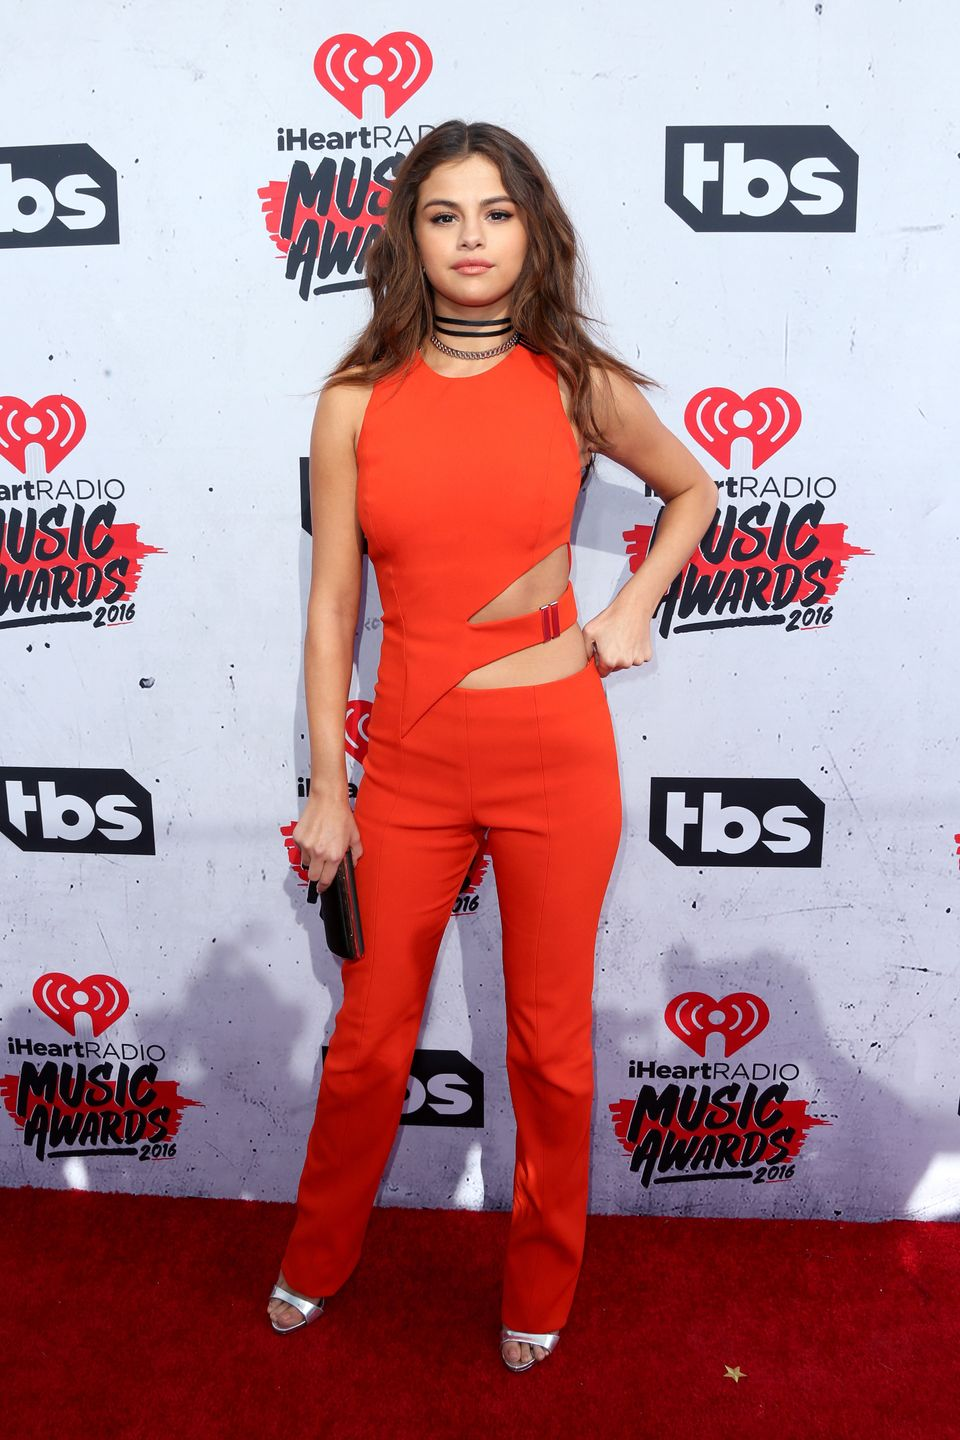 INGLEWOOD, CALIFORNIA - APRIL 03:  Singer Selena Gomez attends the iHeartRadio Music Awards at The Forum on April 3, 2016 in